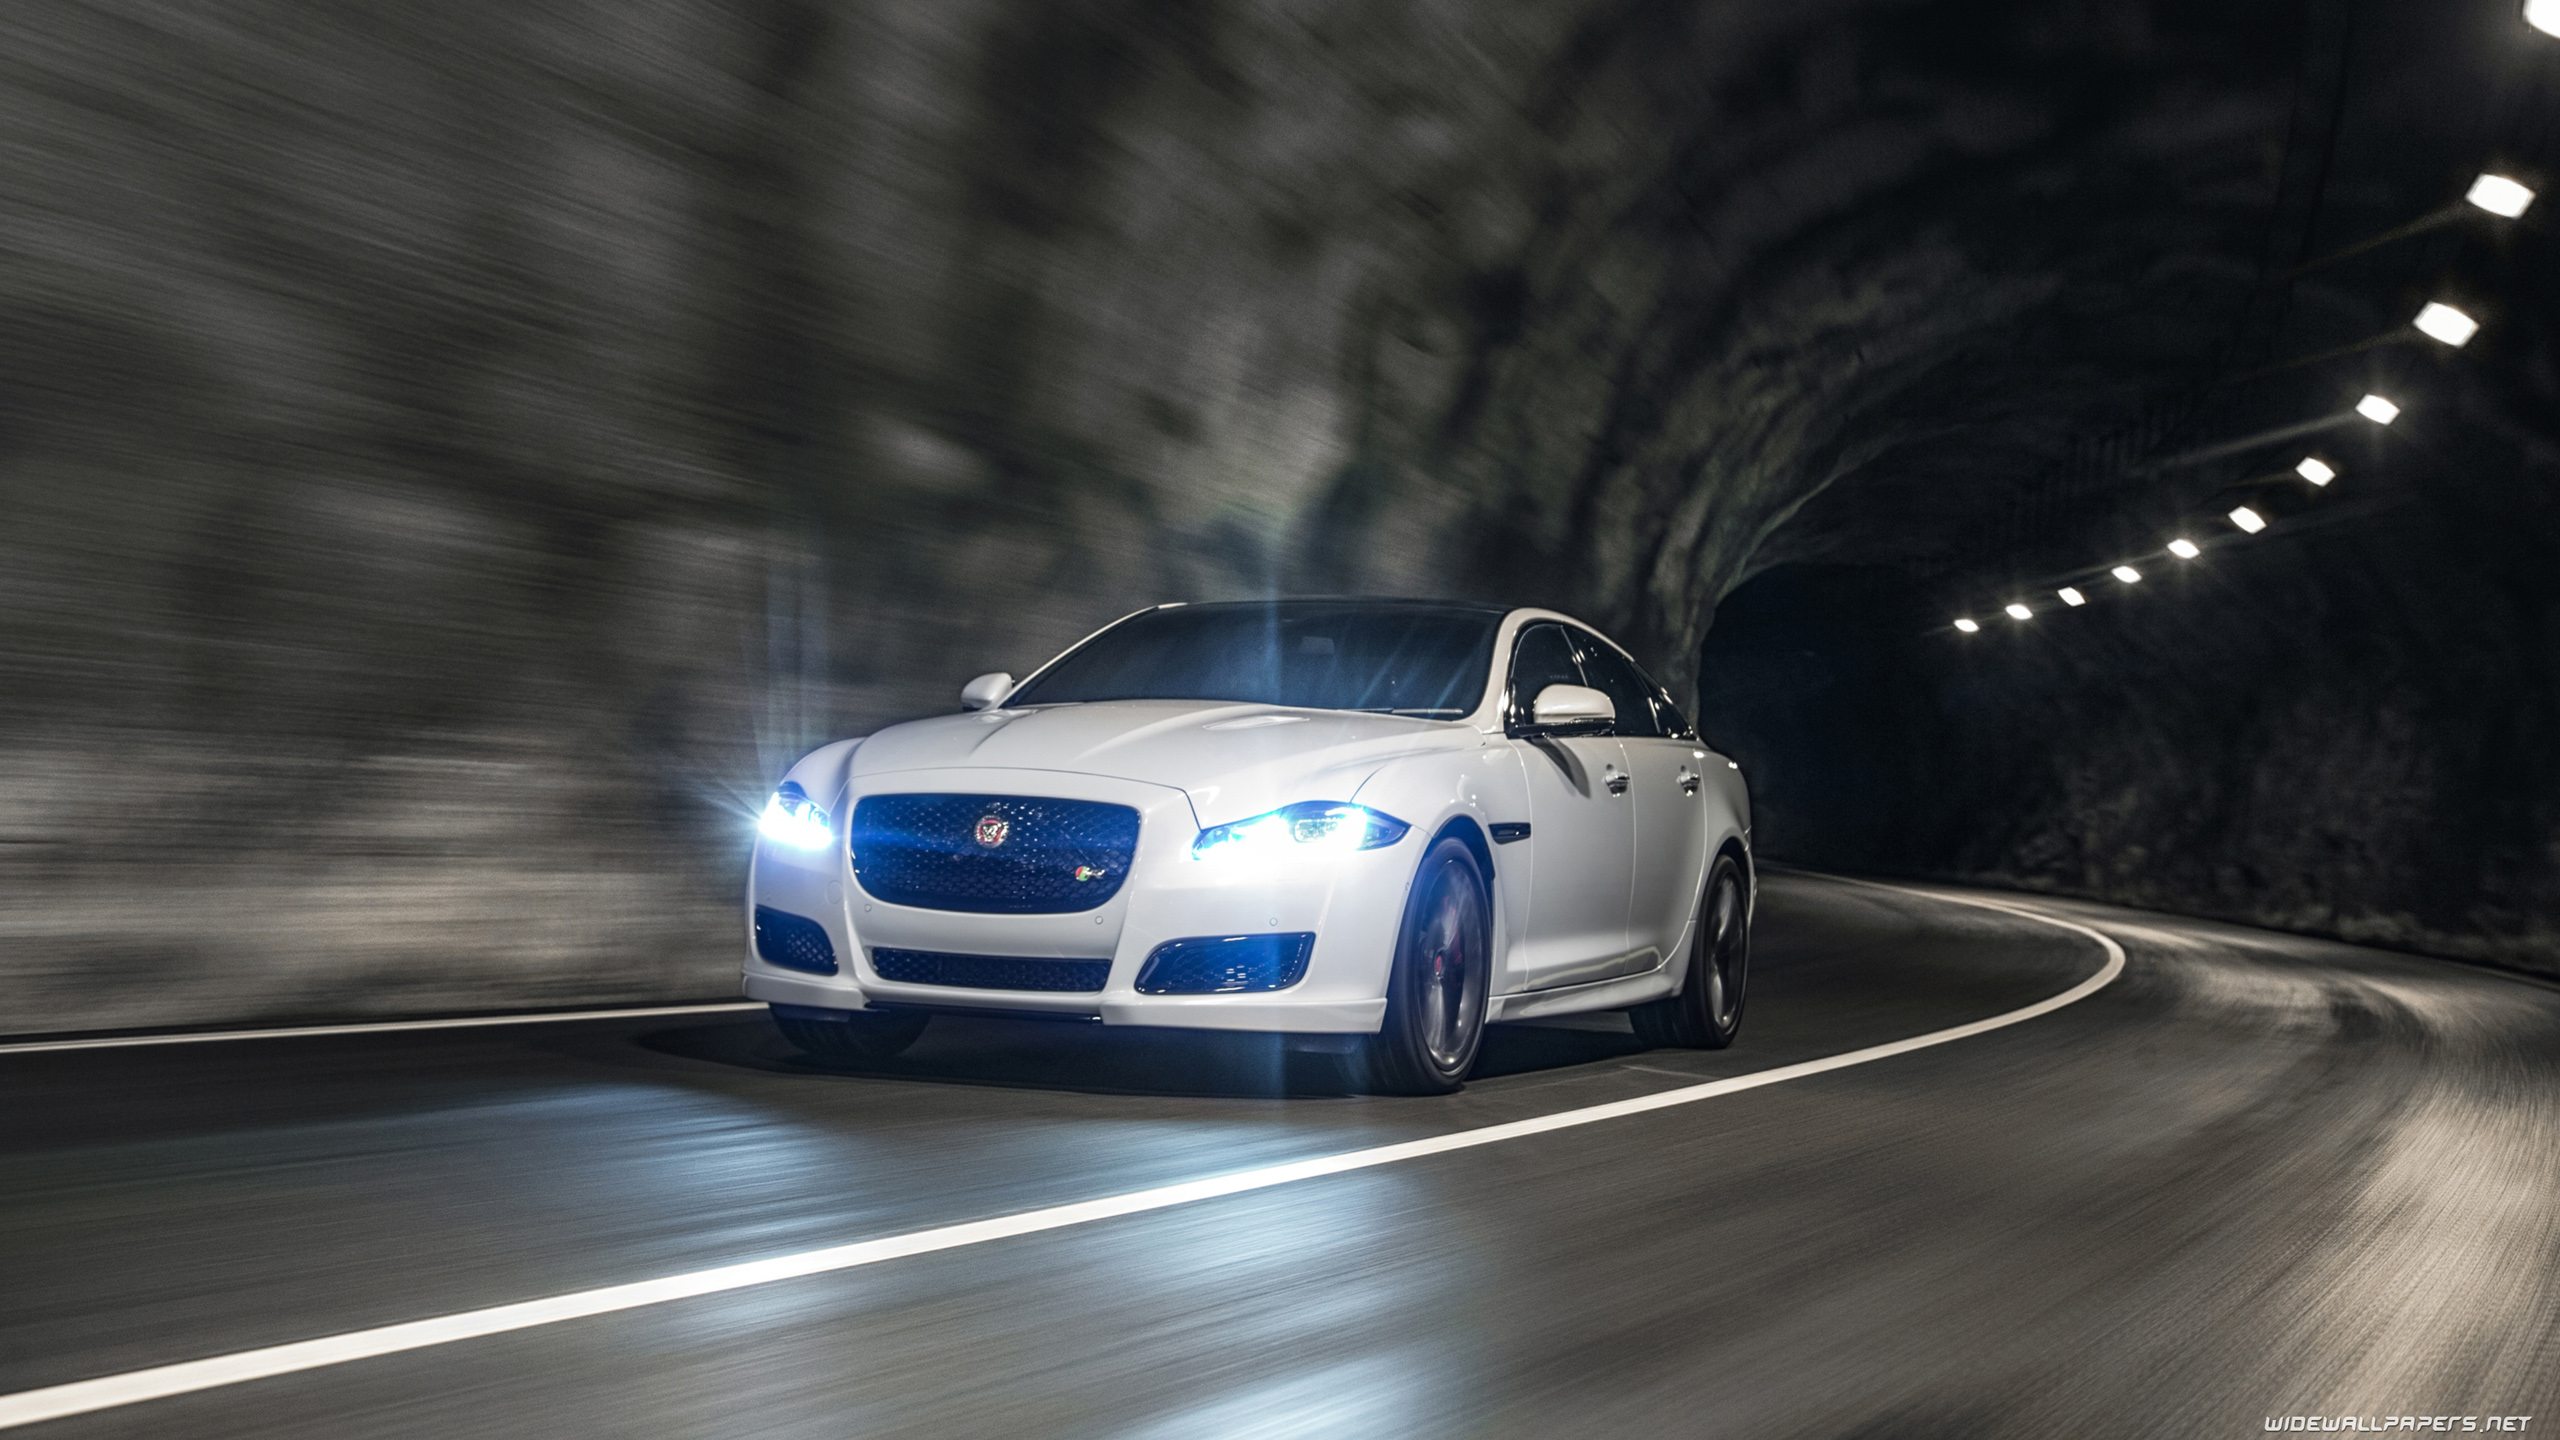 Jaguar XJ Cars Desktop Wallpapers 4K Ultra HD